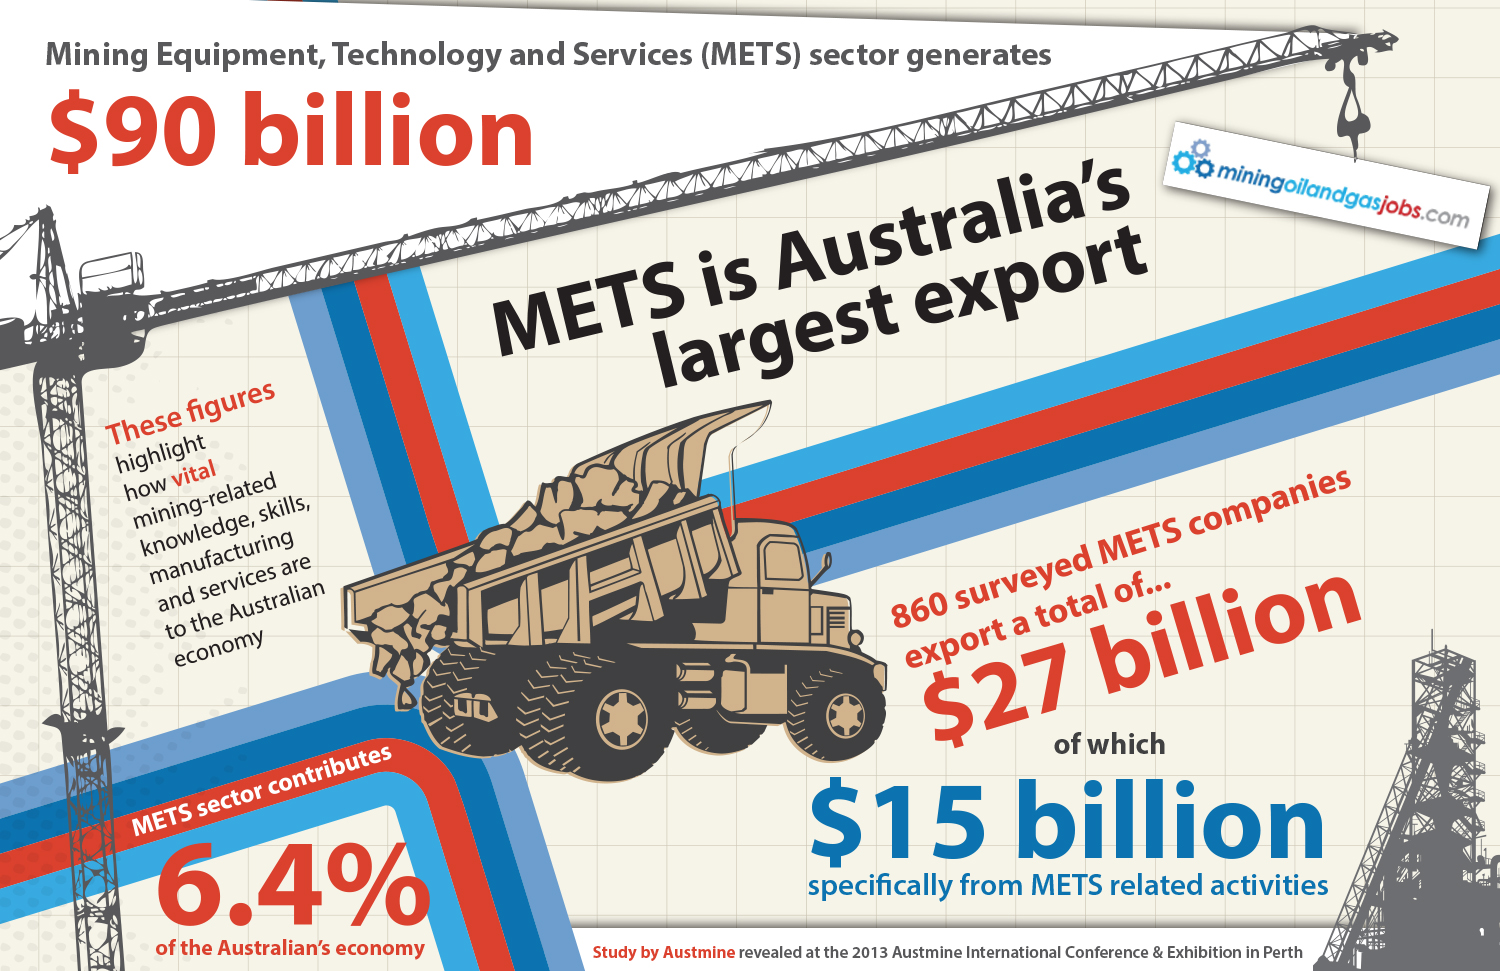 METS Sector Generates $90 billion Infographic